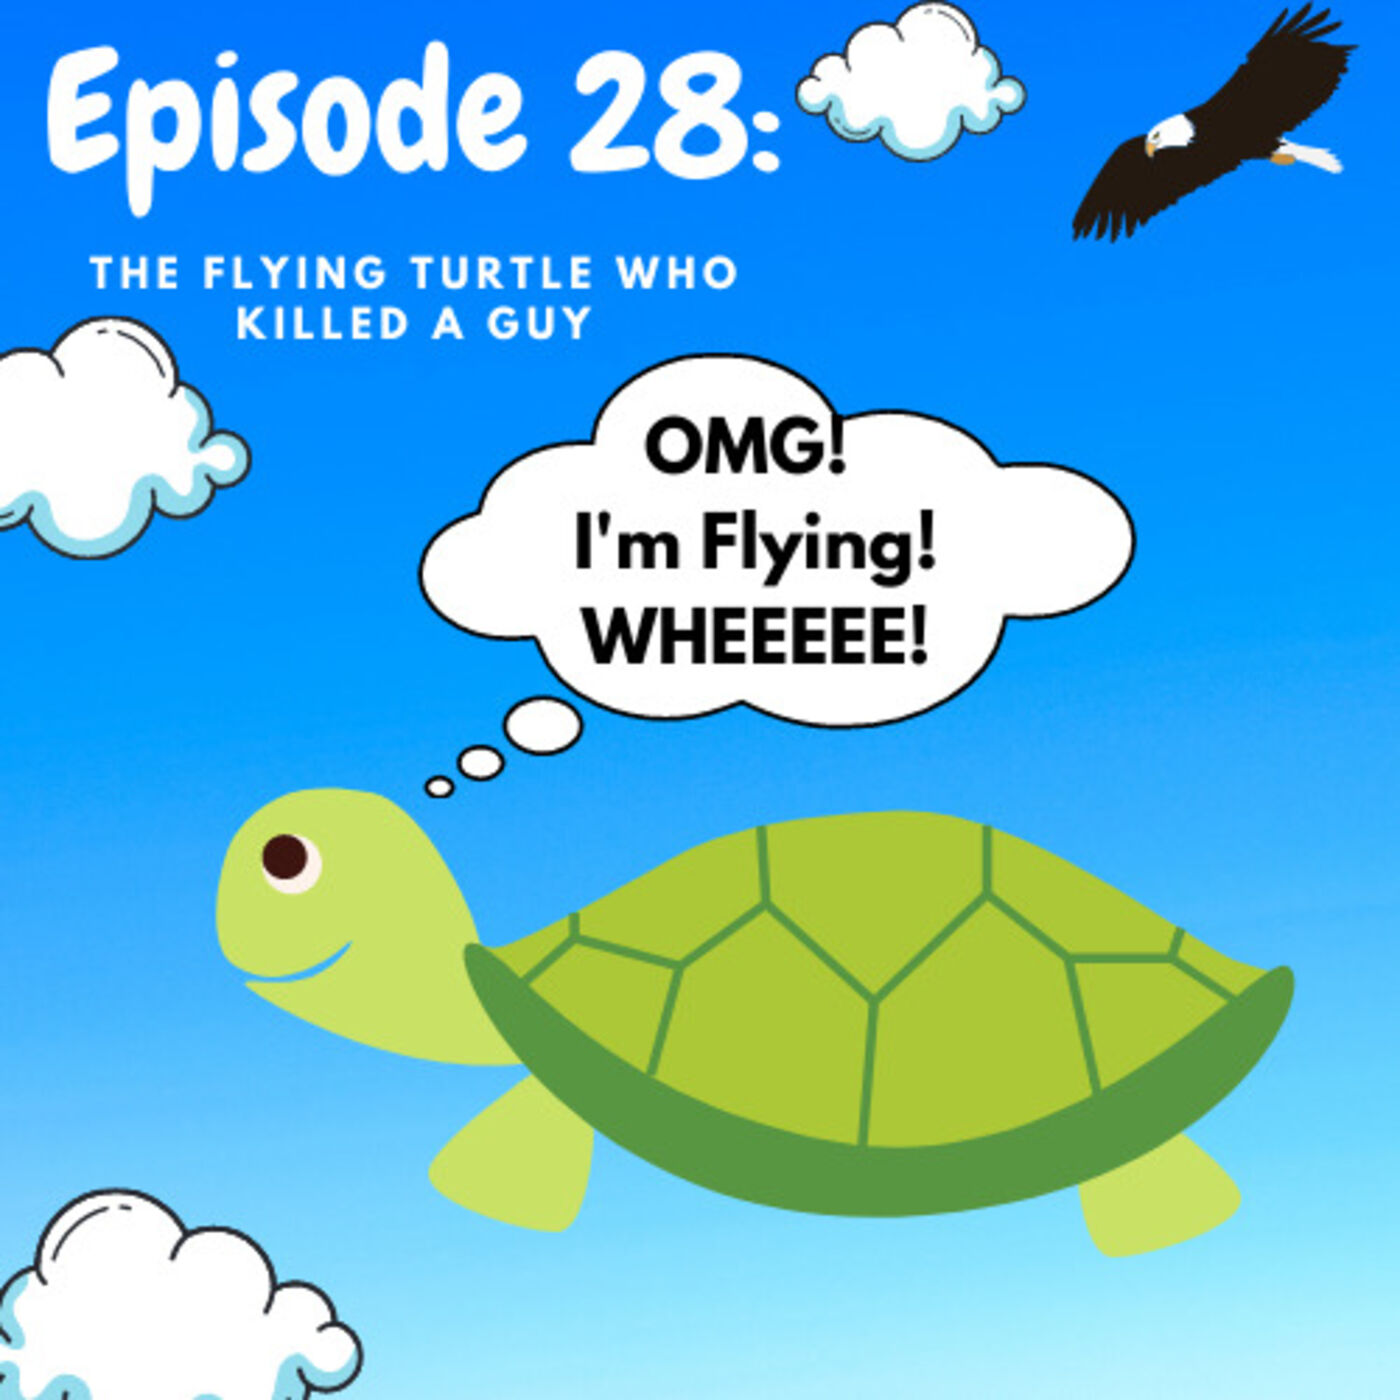 Ep 28: The Flying Turtle Who Killed A Guy